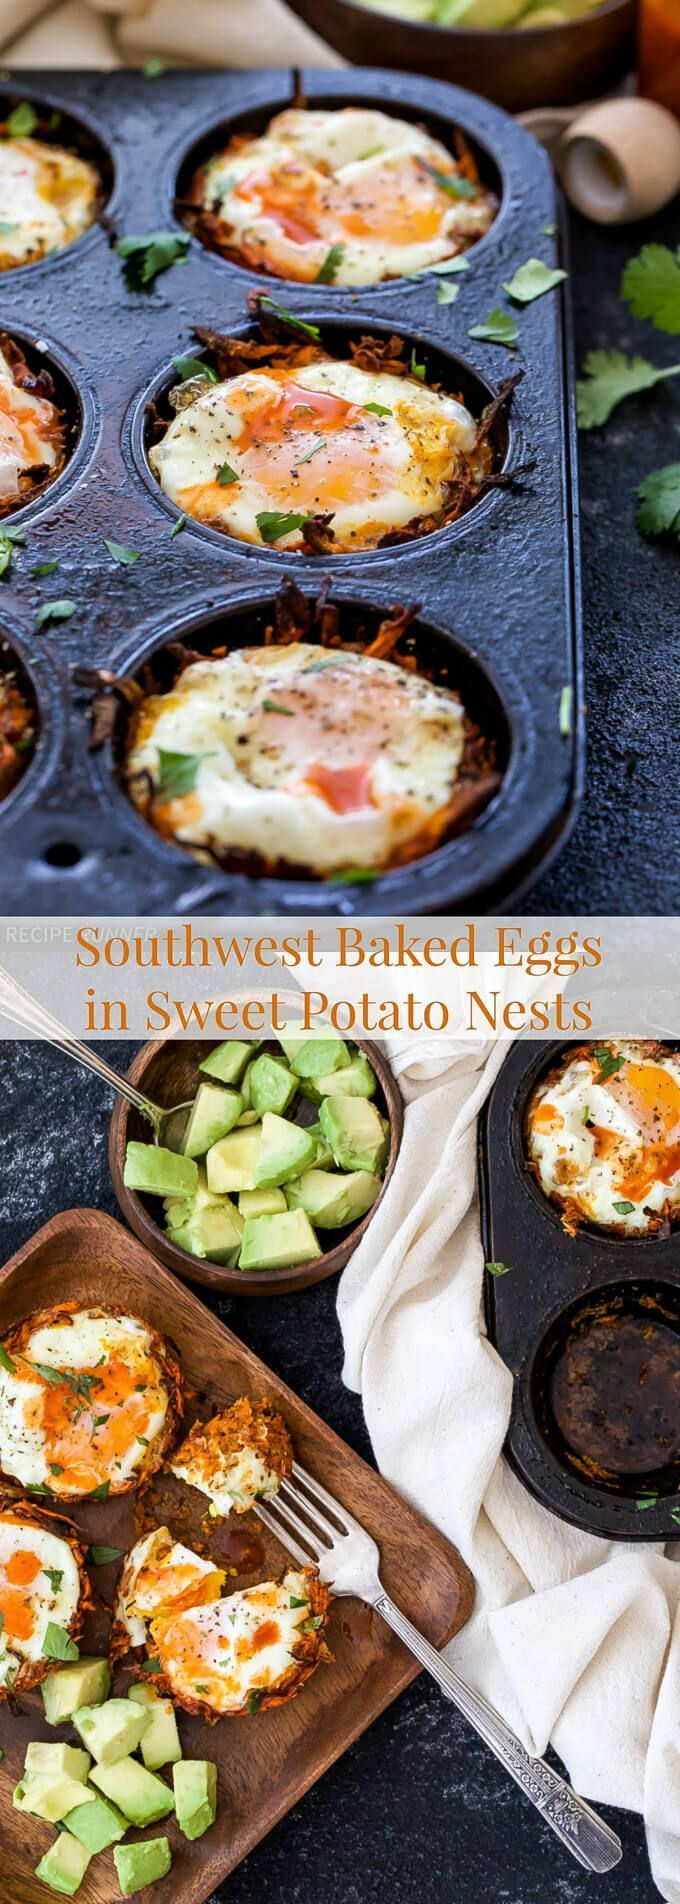 Southwest Baked Eggs in Sweet Potato Nests are perfect for brunch or a grab-and-go breakfast! Top them with your favorite hot sauce and avocado for a protein packed, vegetarian and gluten-free breakfast!